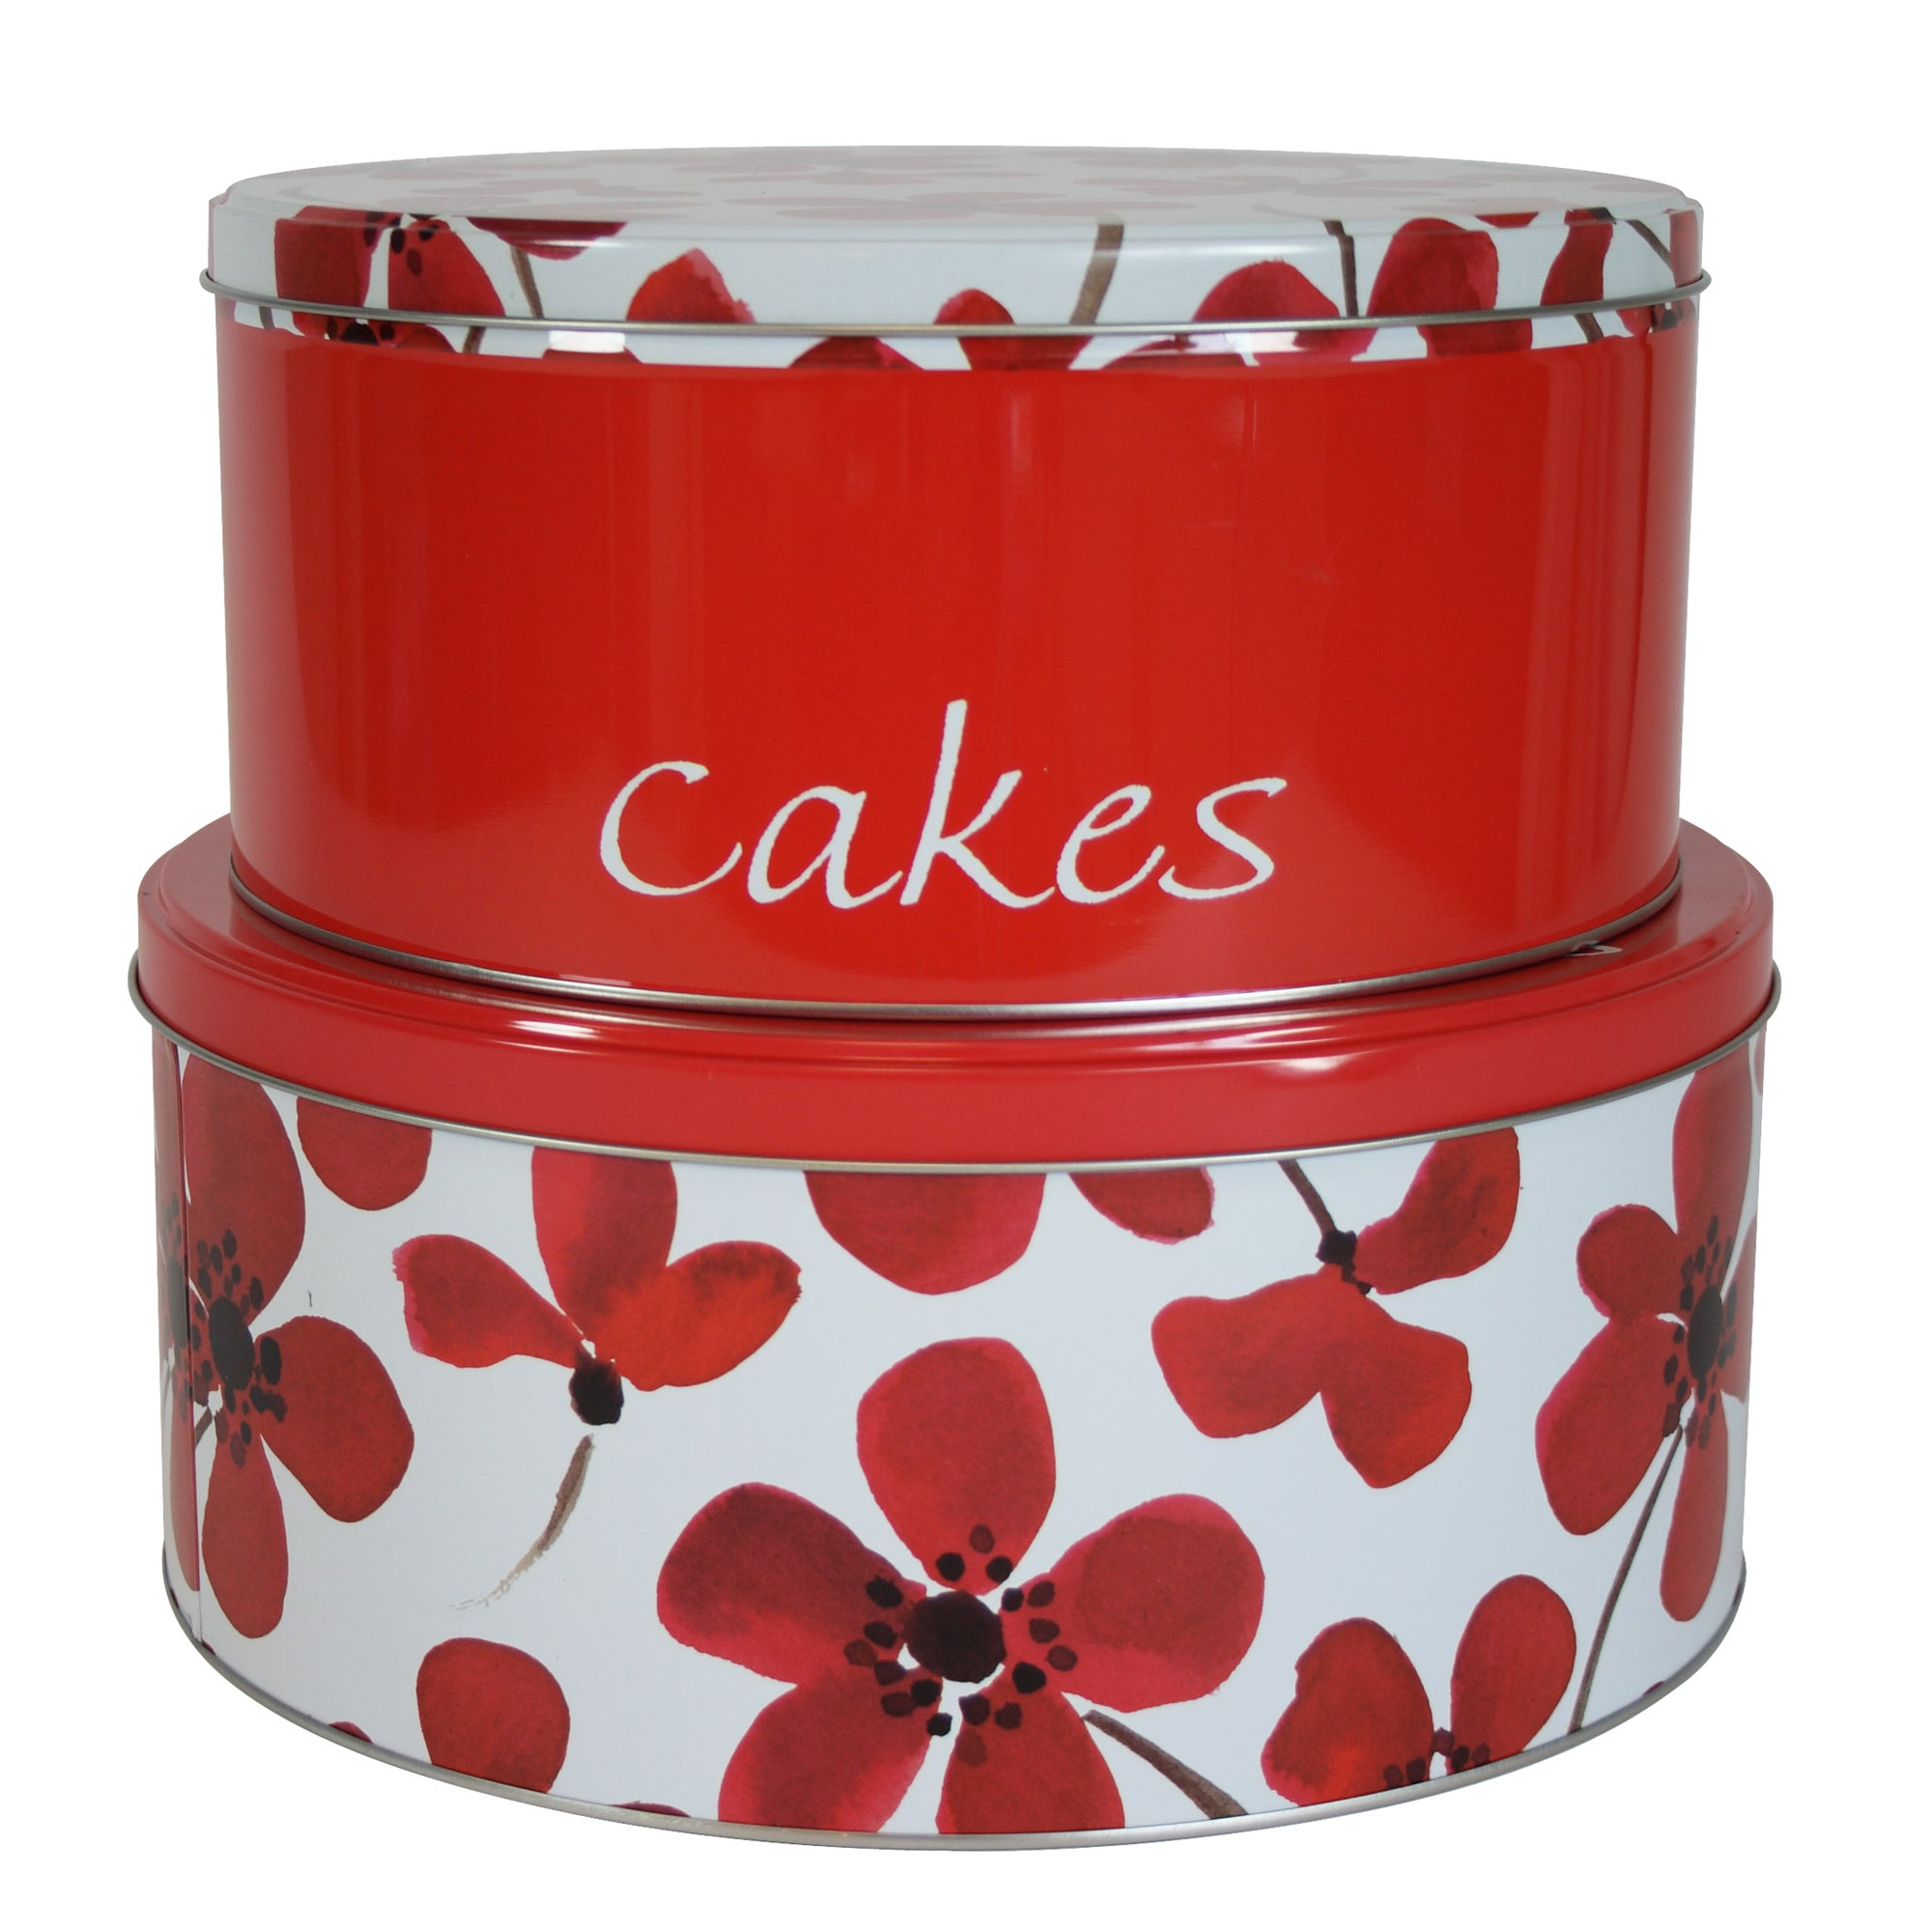 How To Clean Cake Tins